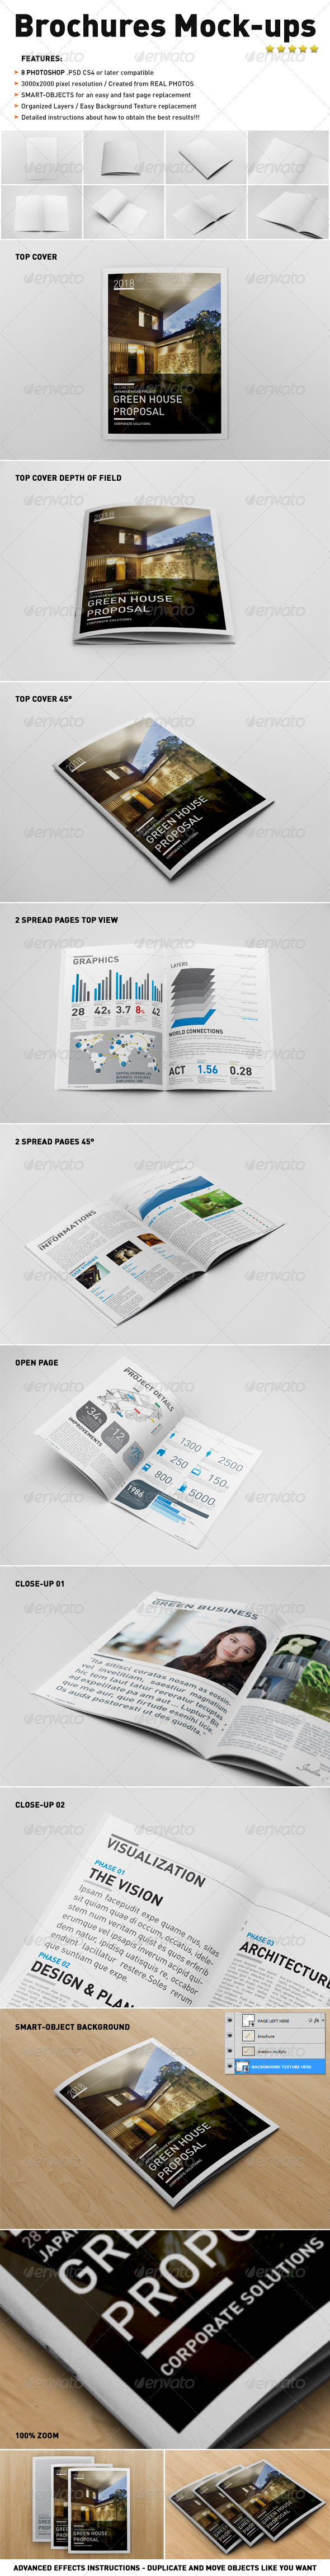 GraphicRiver Photorealistic Brochure Mock-ups 3544158